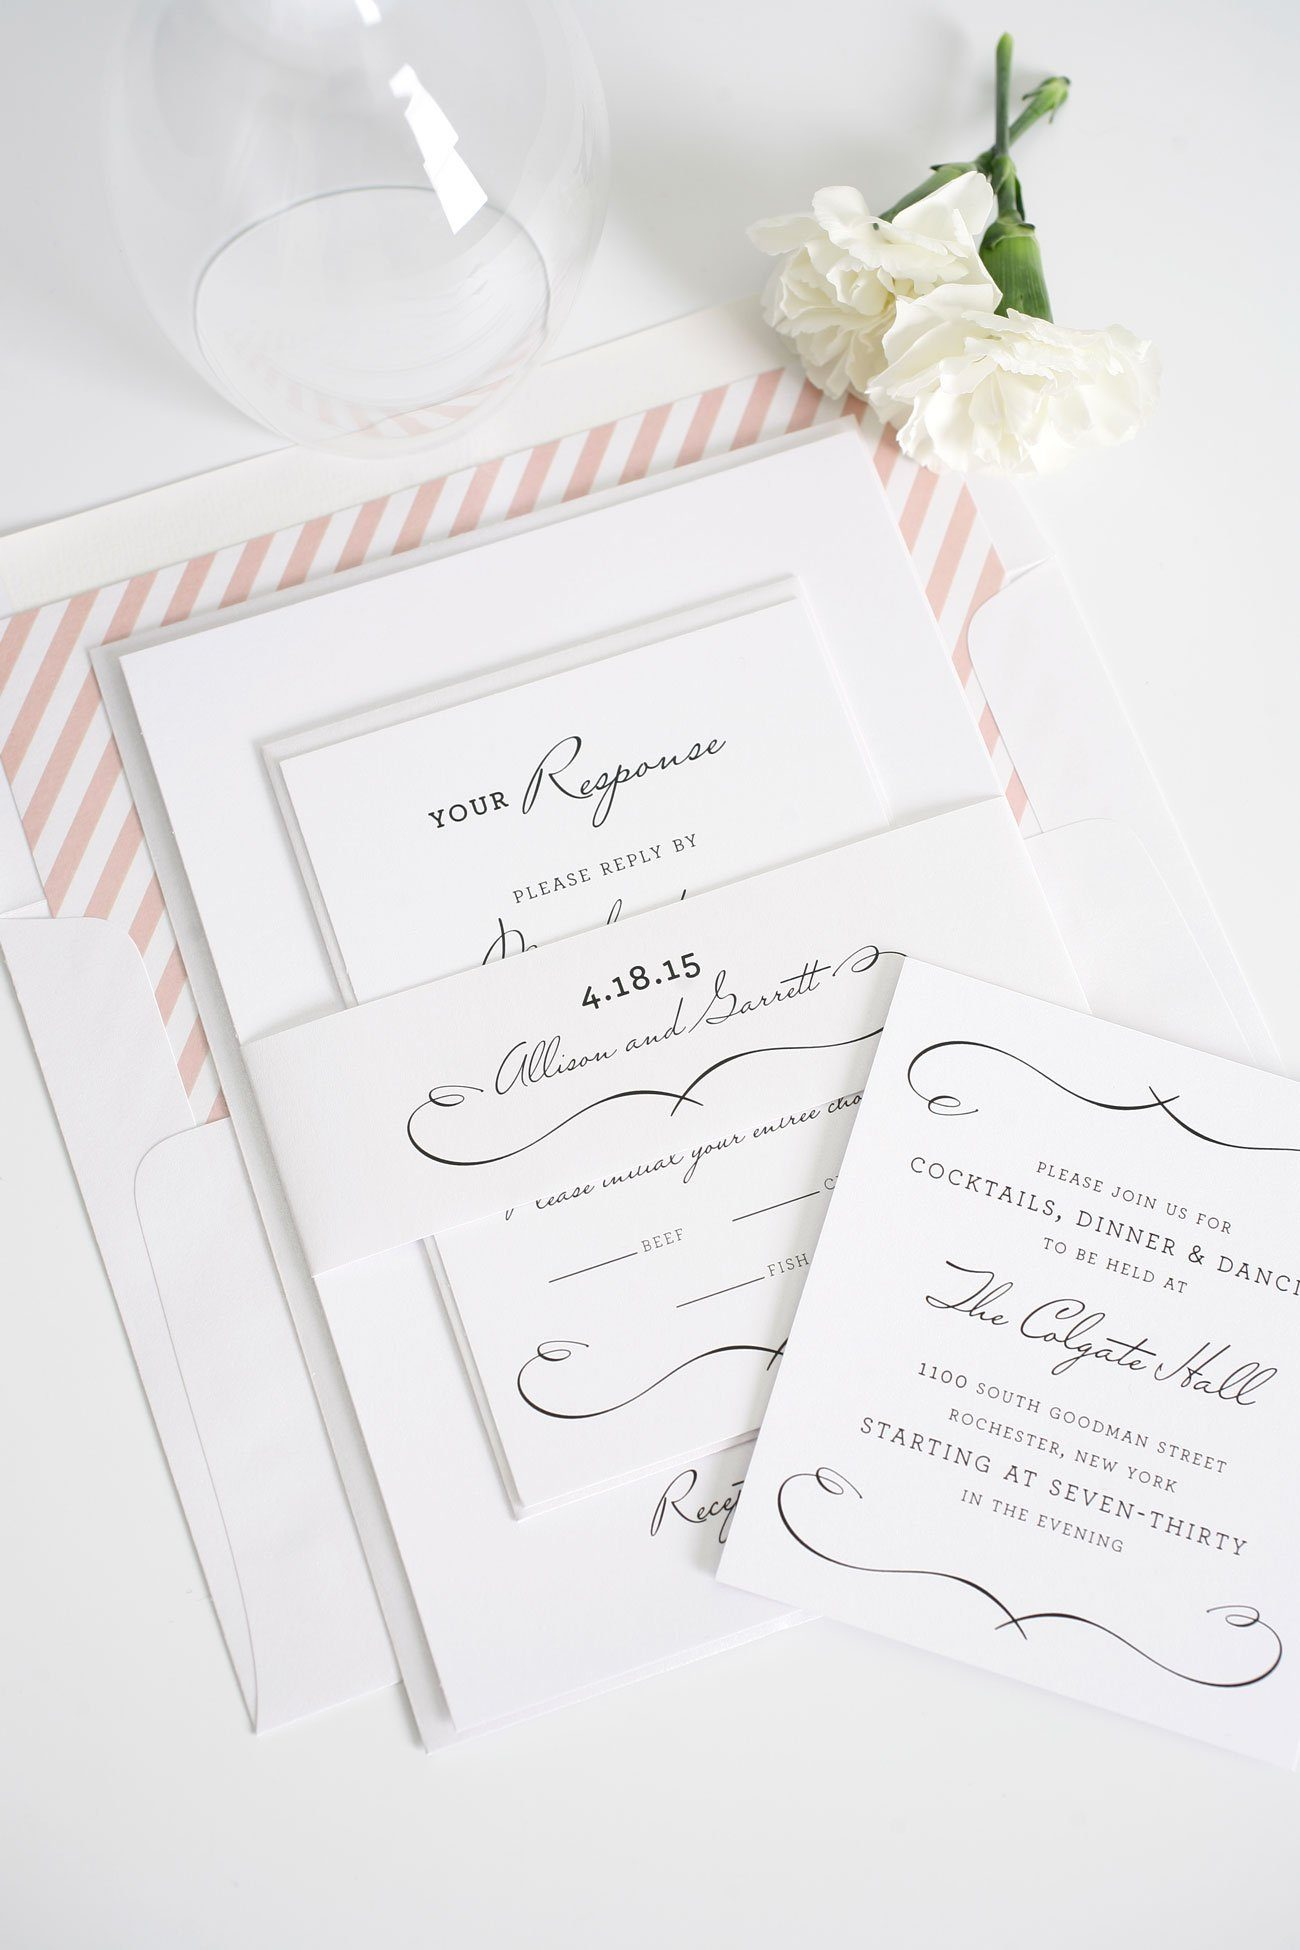 French wedding invitations in blush with stripe accents